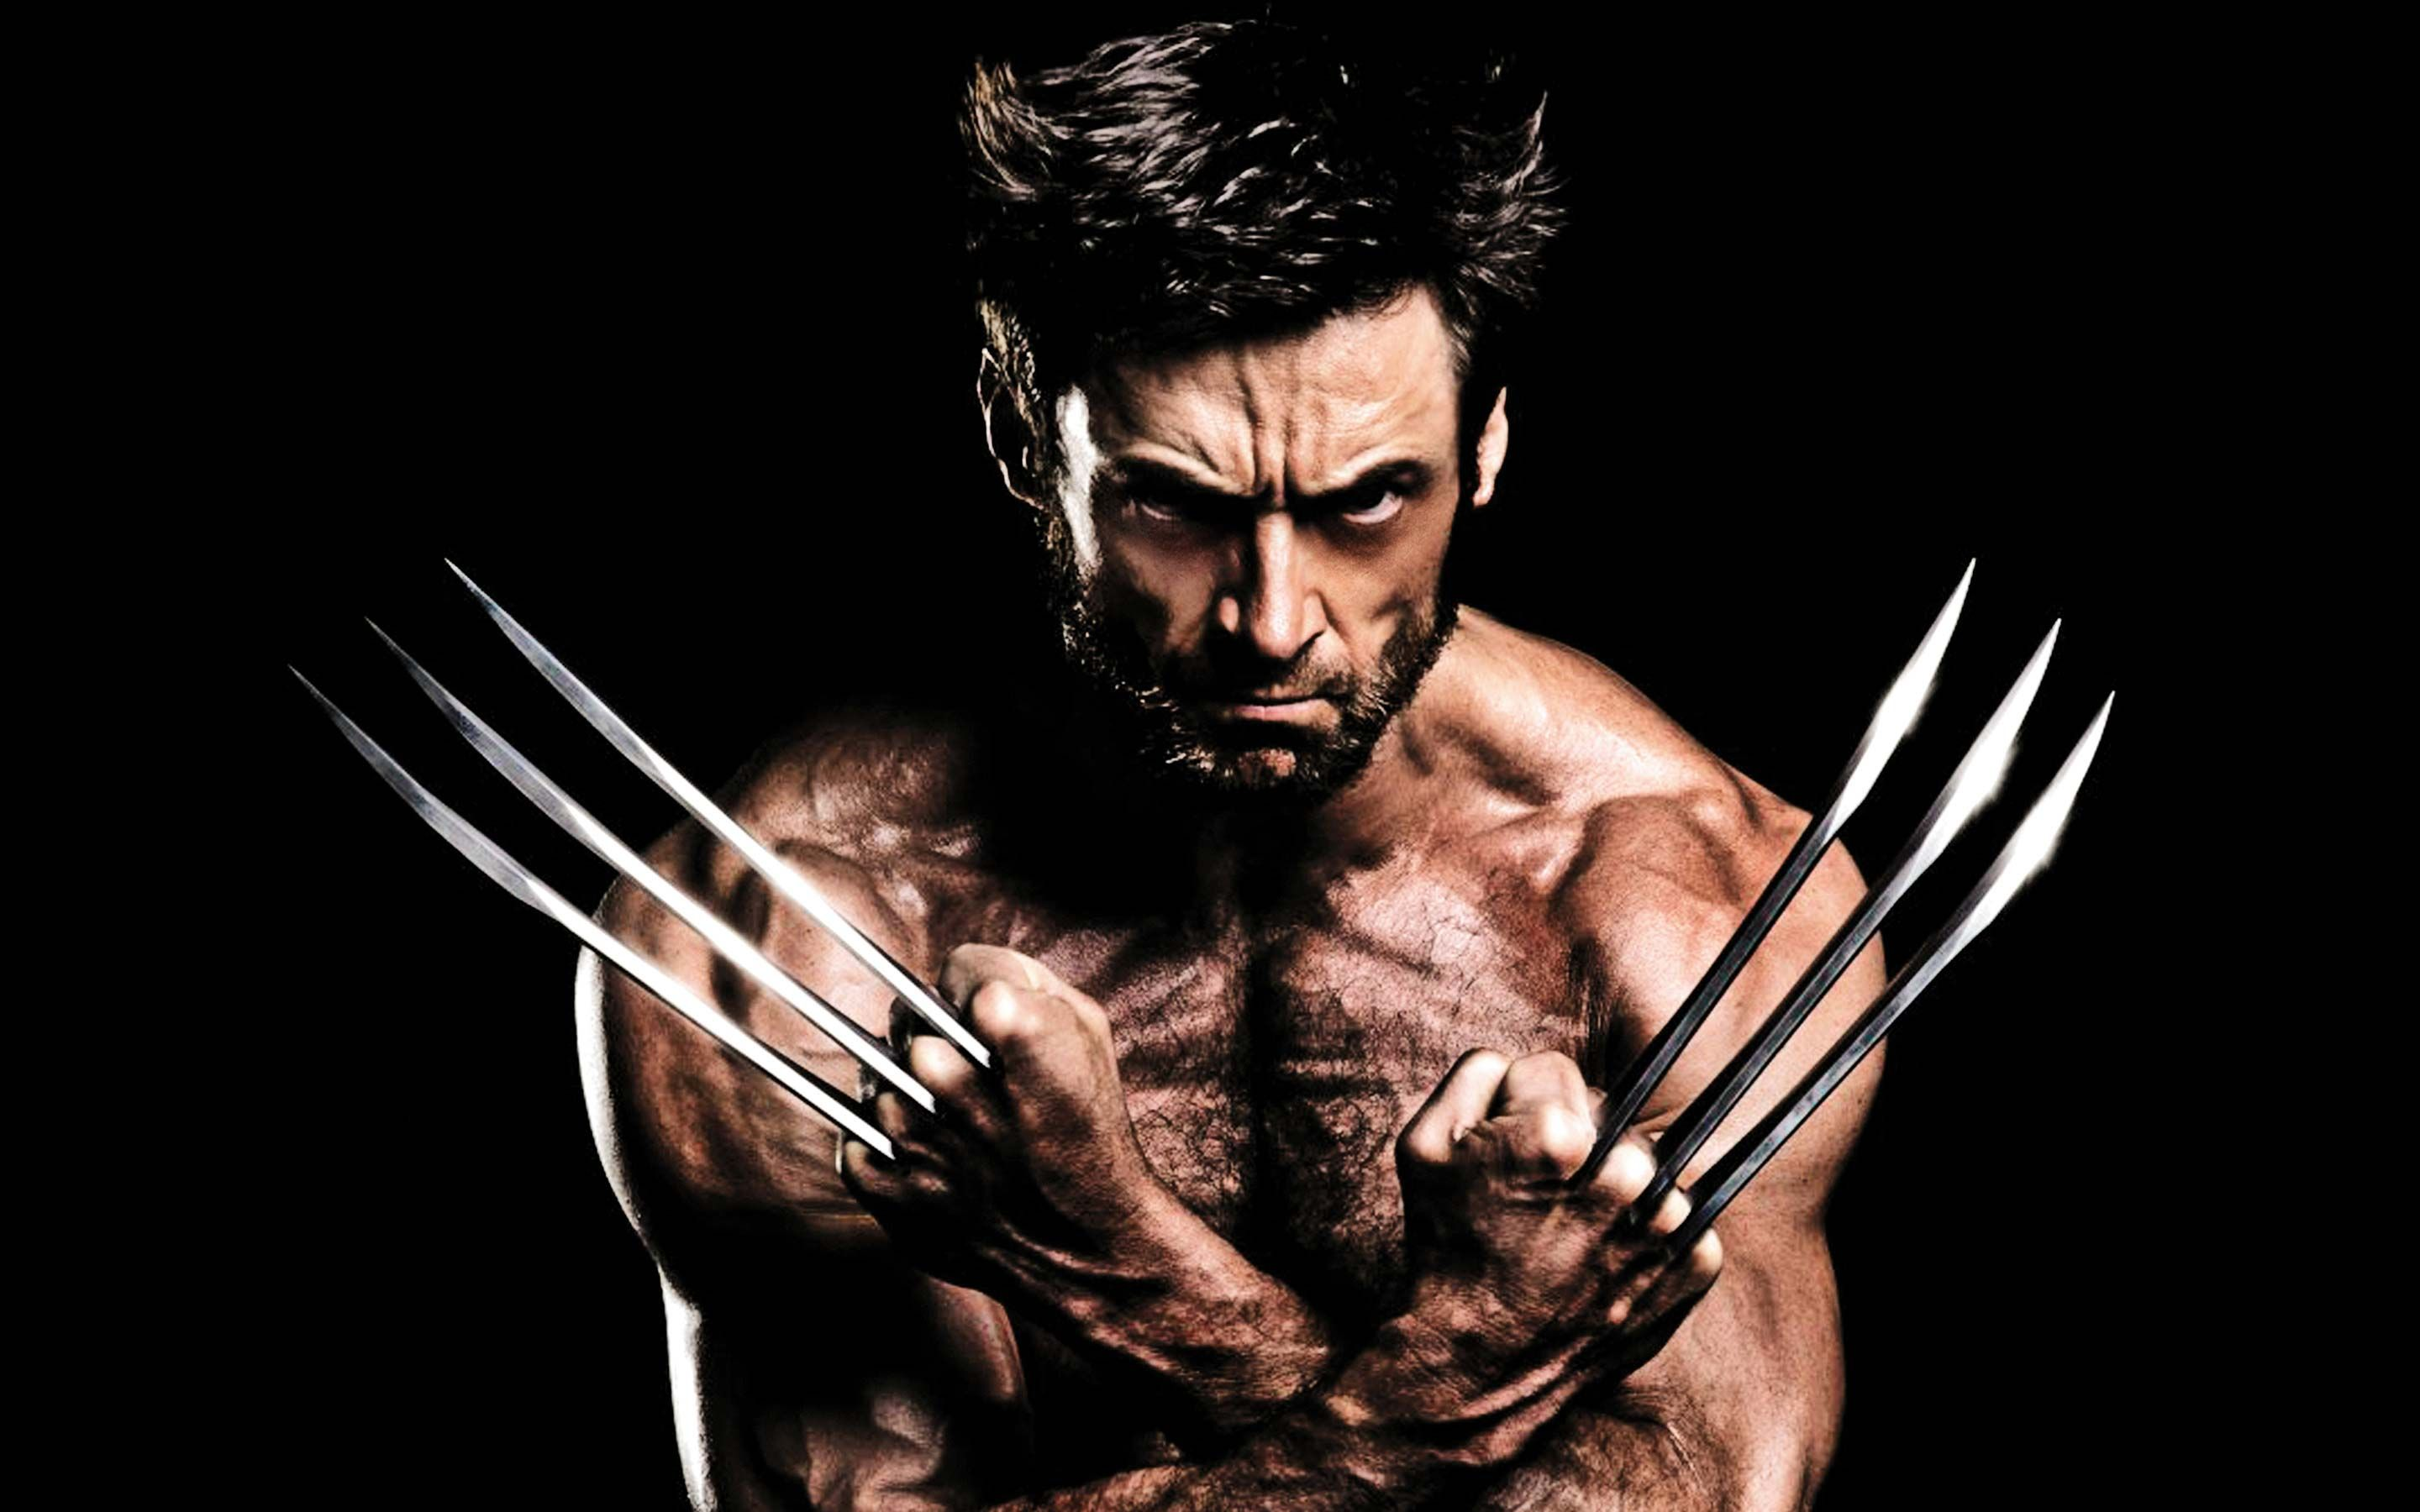 wolverine wallpapers hd quality download | hd wallpapers | pinterest